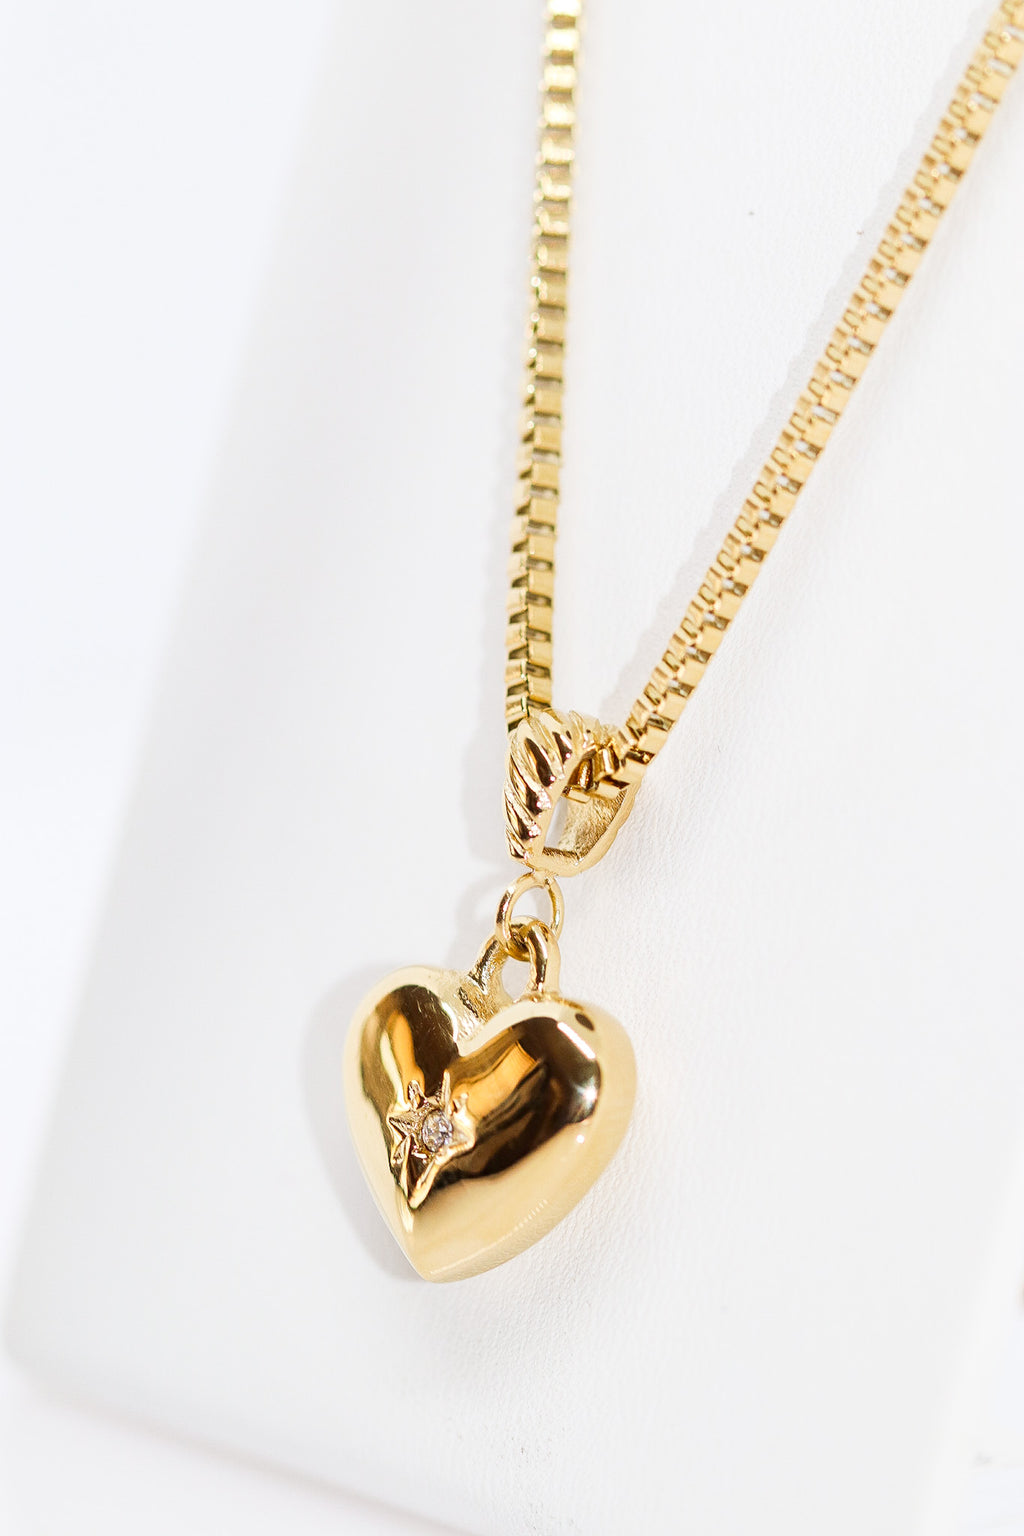 SPARKLE HEART CHAIN - Taimana Boutique